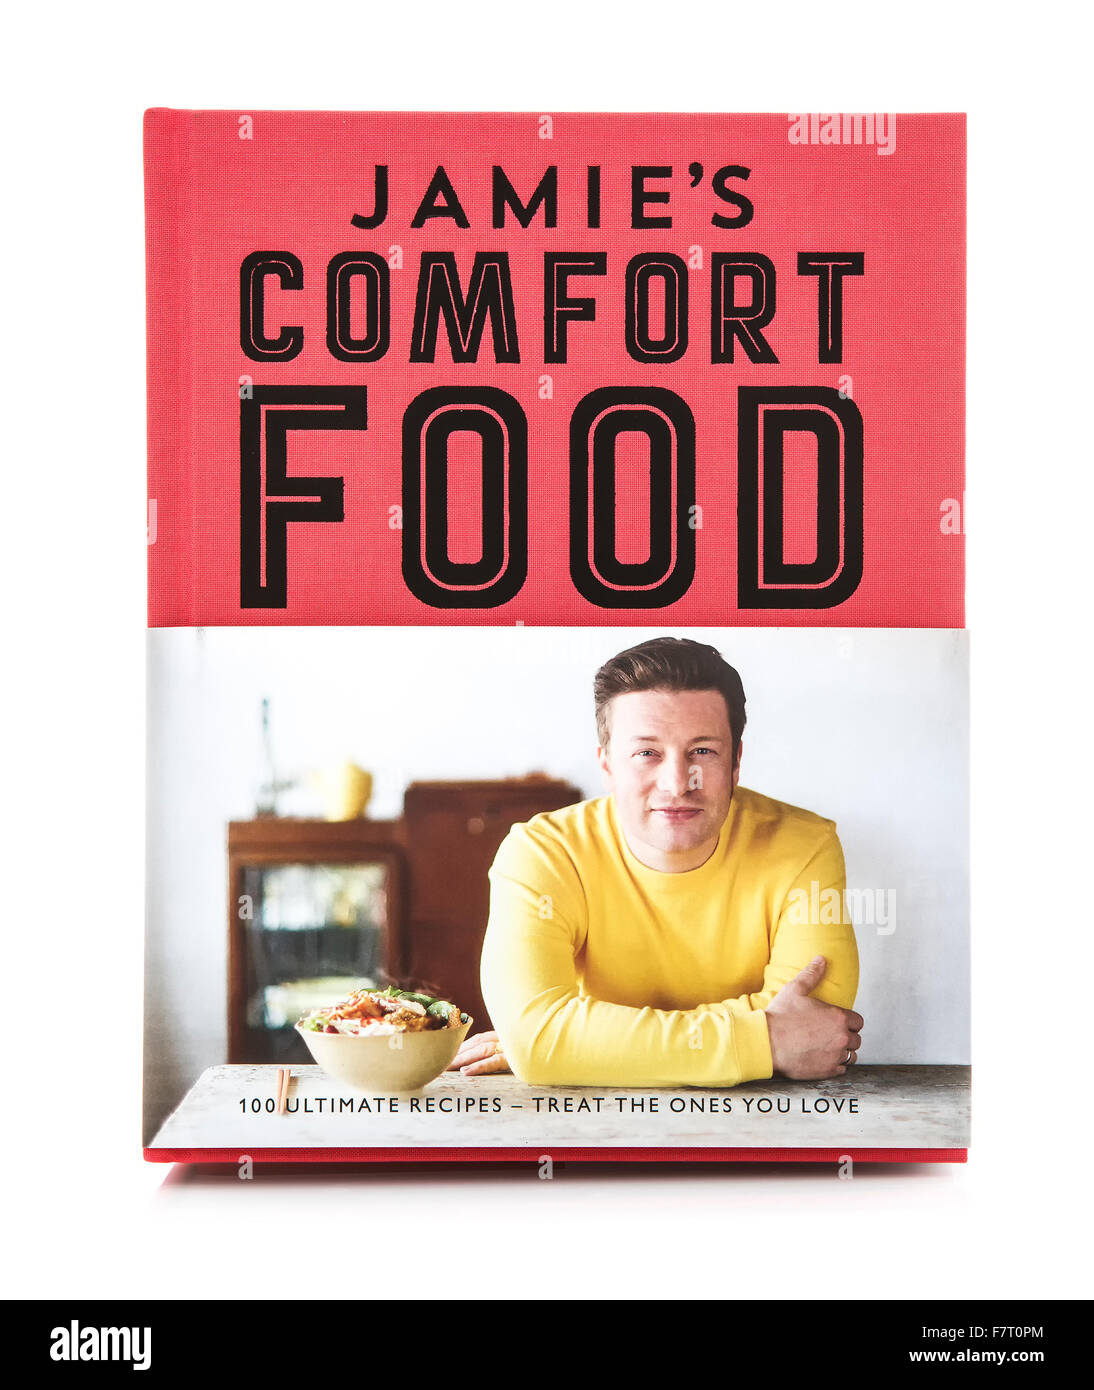 Jamie Oliver Comfort Food, 100 Ultimate Recipes - Treat the Ones You Love on a white background - Stock Image